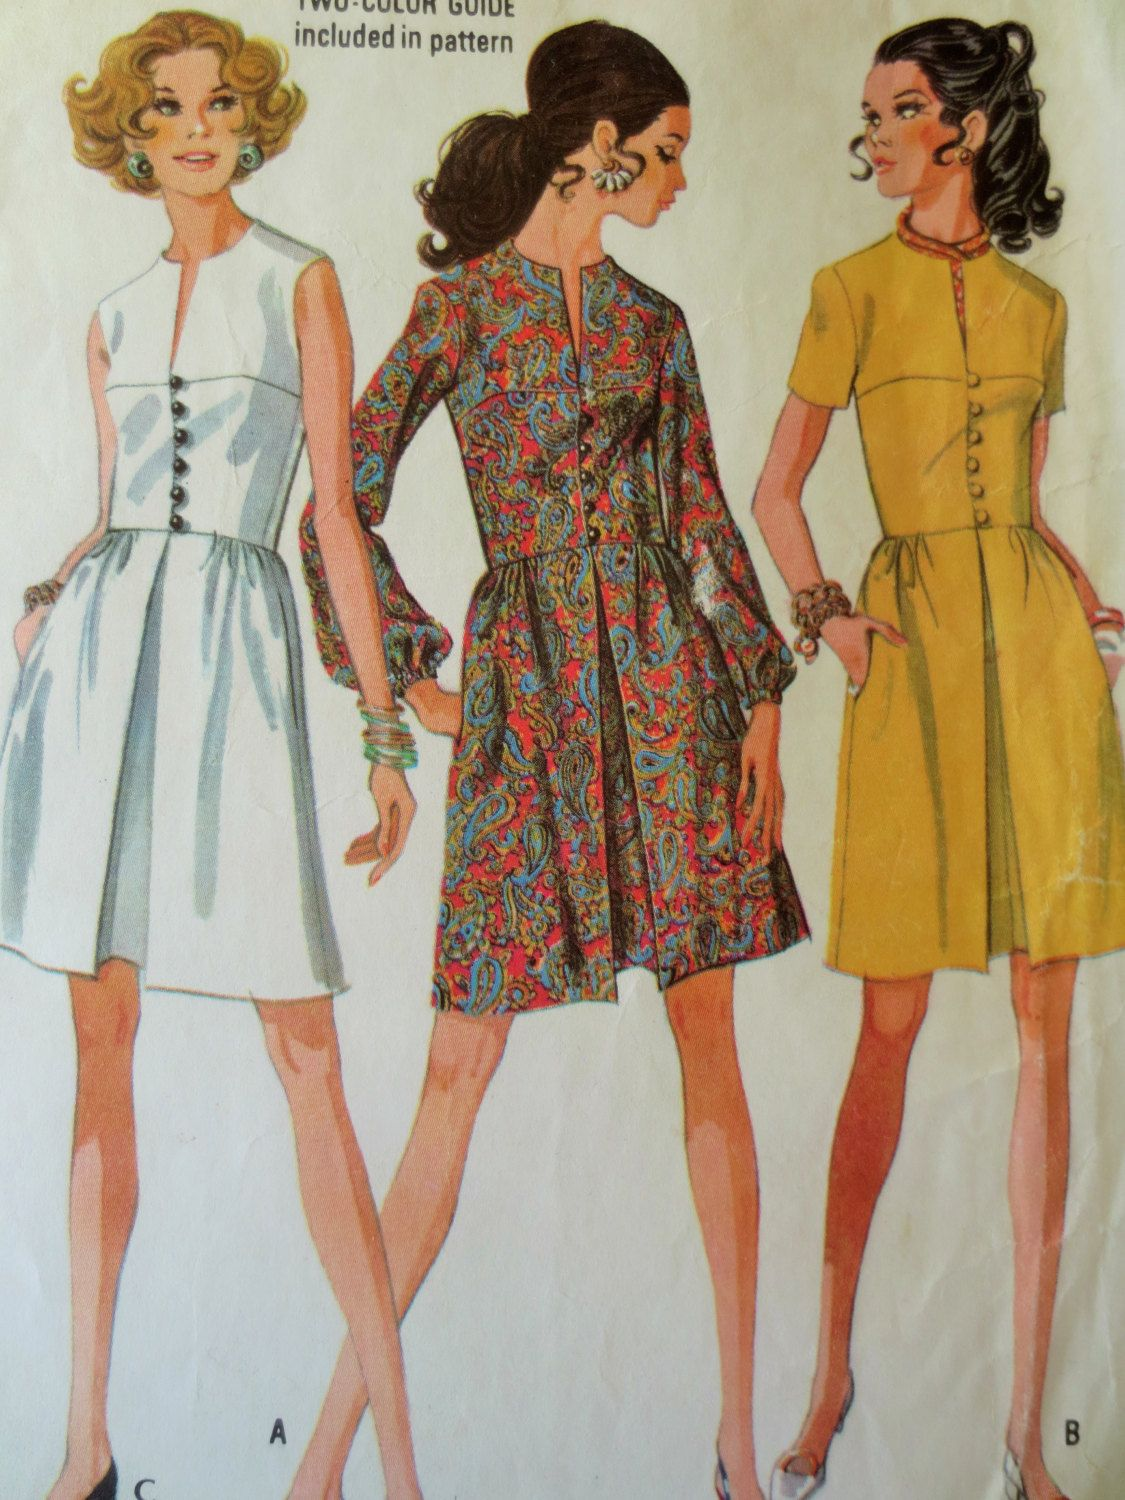 Vintage Mccall S 9709 Sewing Pattern 1960s Dress Pattern Inverted Pleat Bust 36 1960s Sewing Pattern Midriff Interest Vintage Sewing Vintage Dress Patterns Vintage Outfits Vintage Sewing Patterns